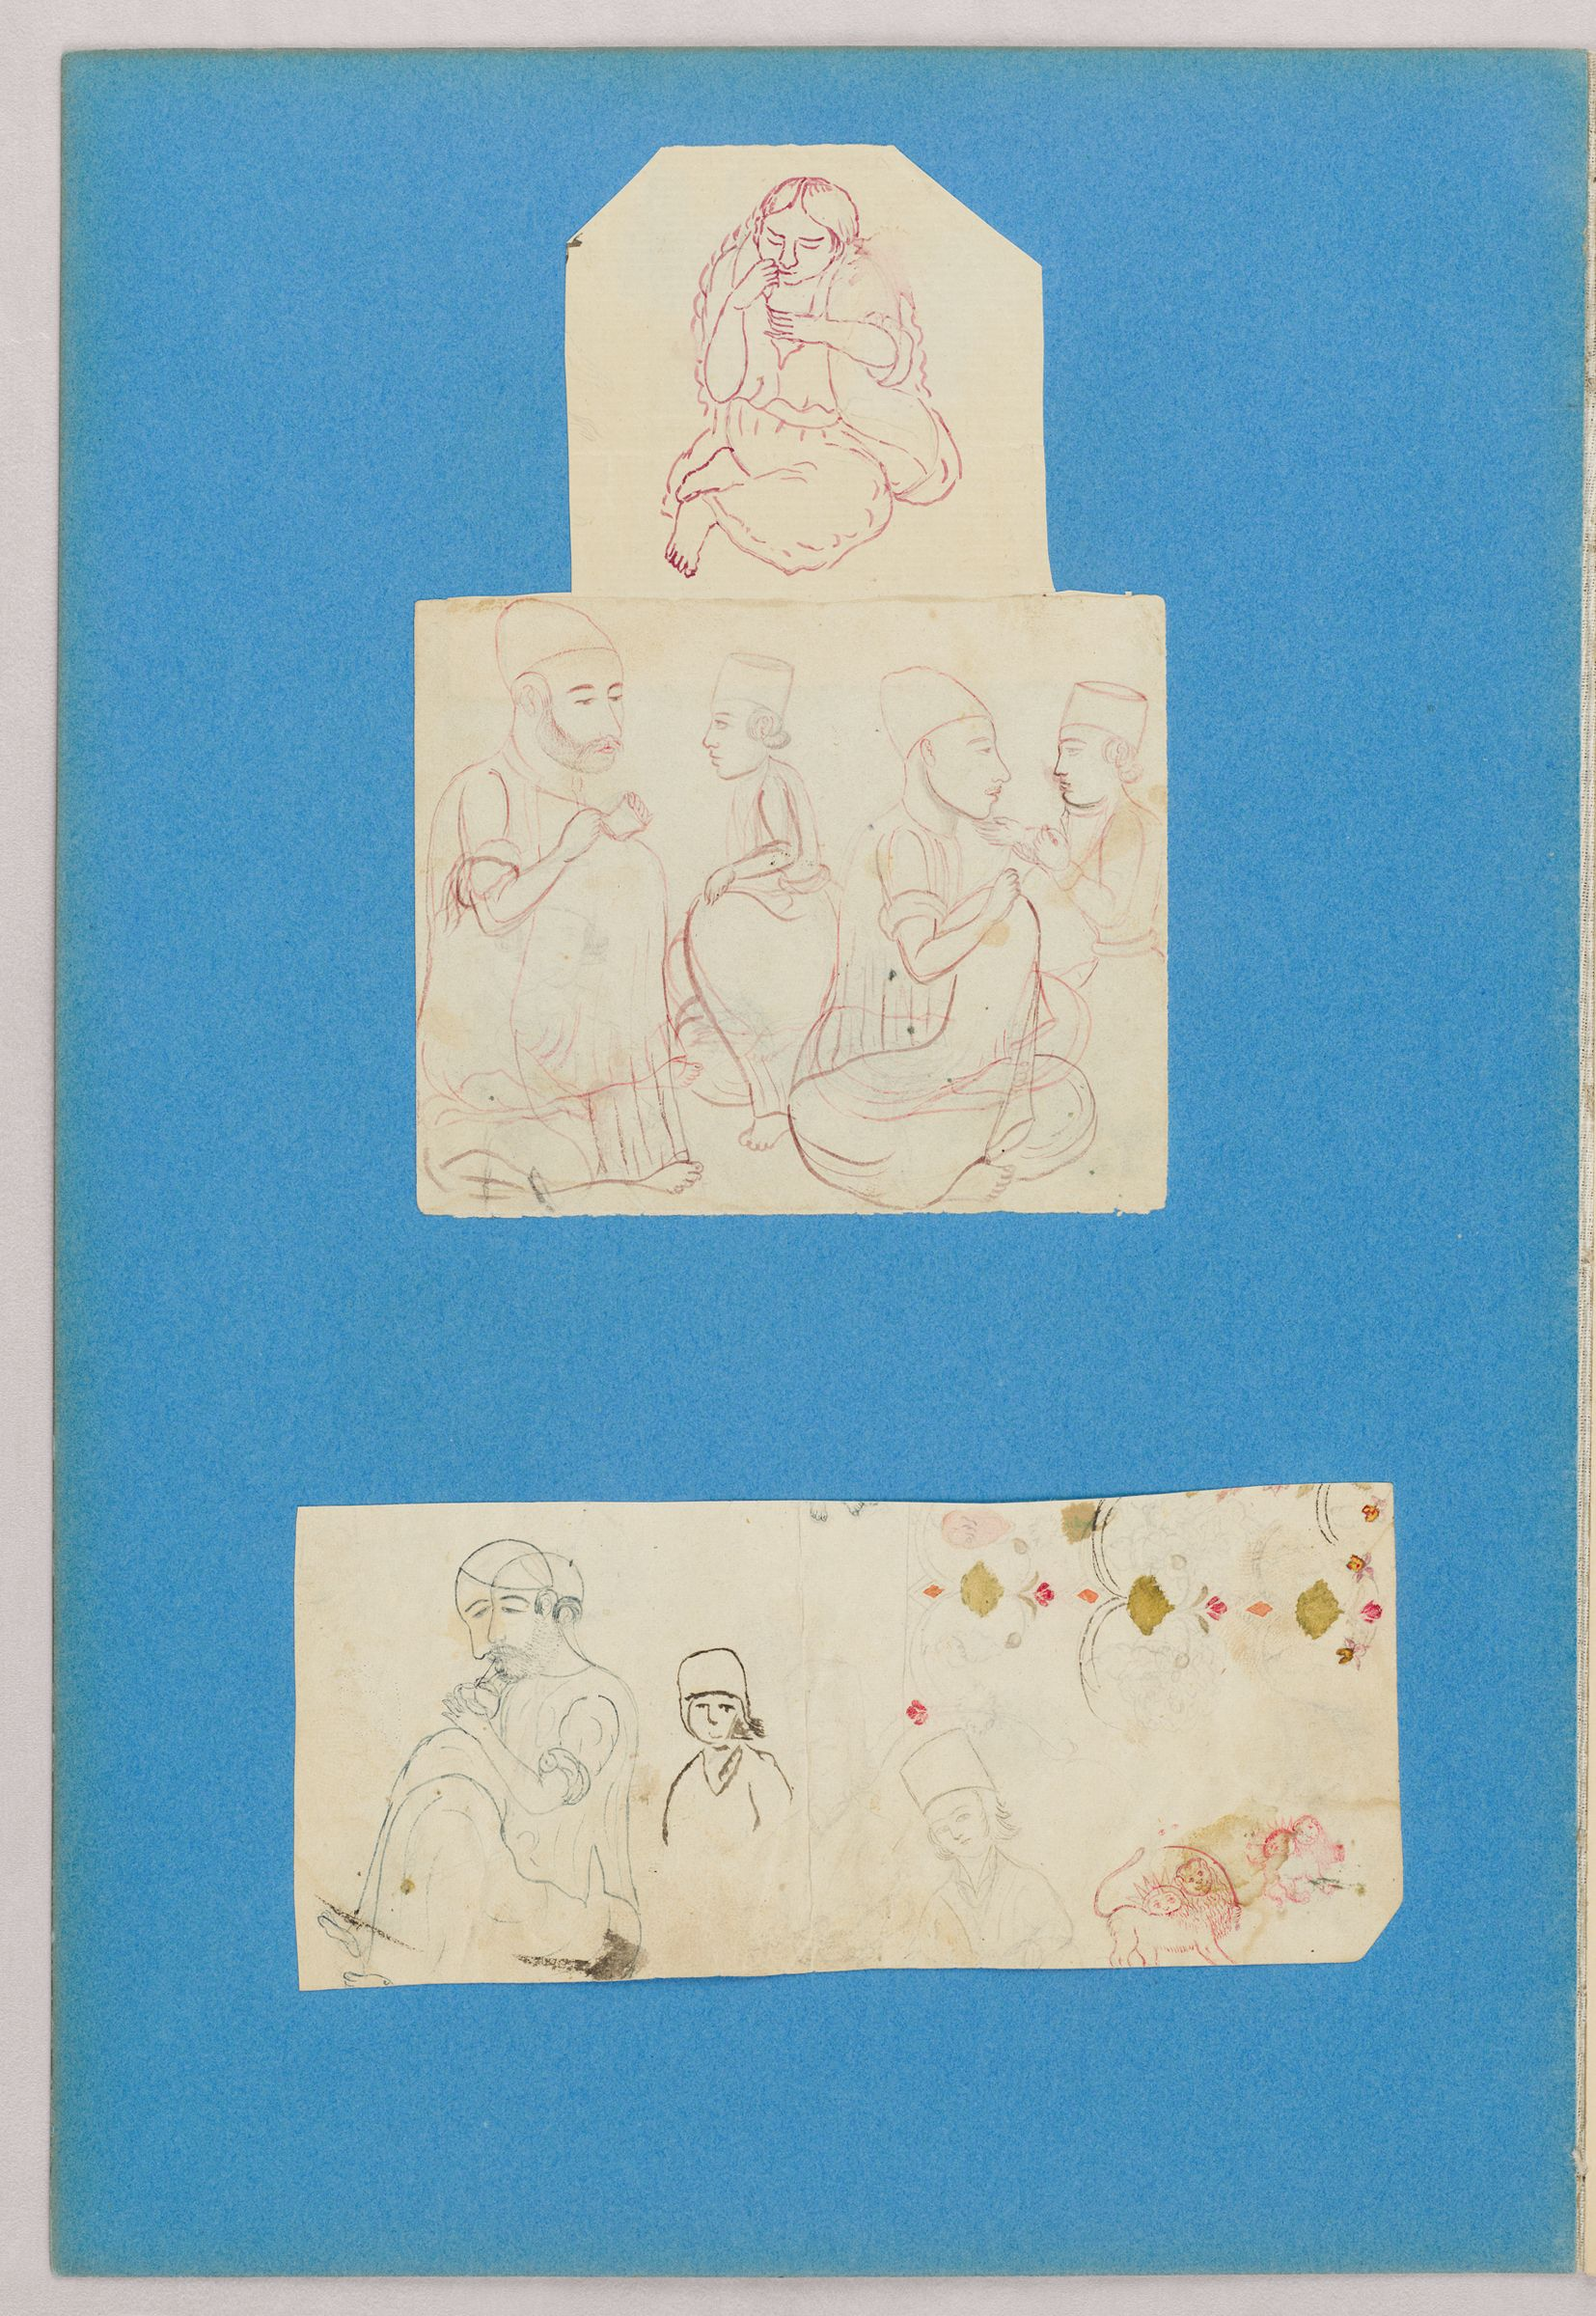 Folio 38 From An Album Of Drawings And Paintings: Three Sheets With Sketches Of People, And Sun And Lion Motifs (Recto); Blank Page (Verso)